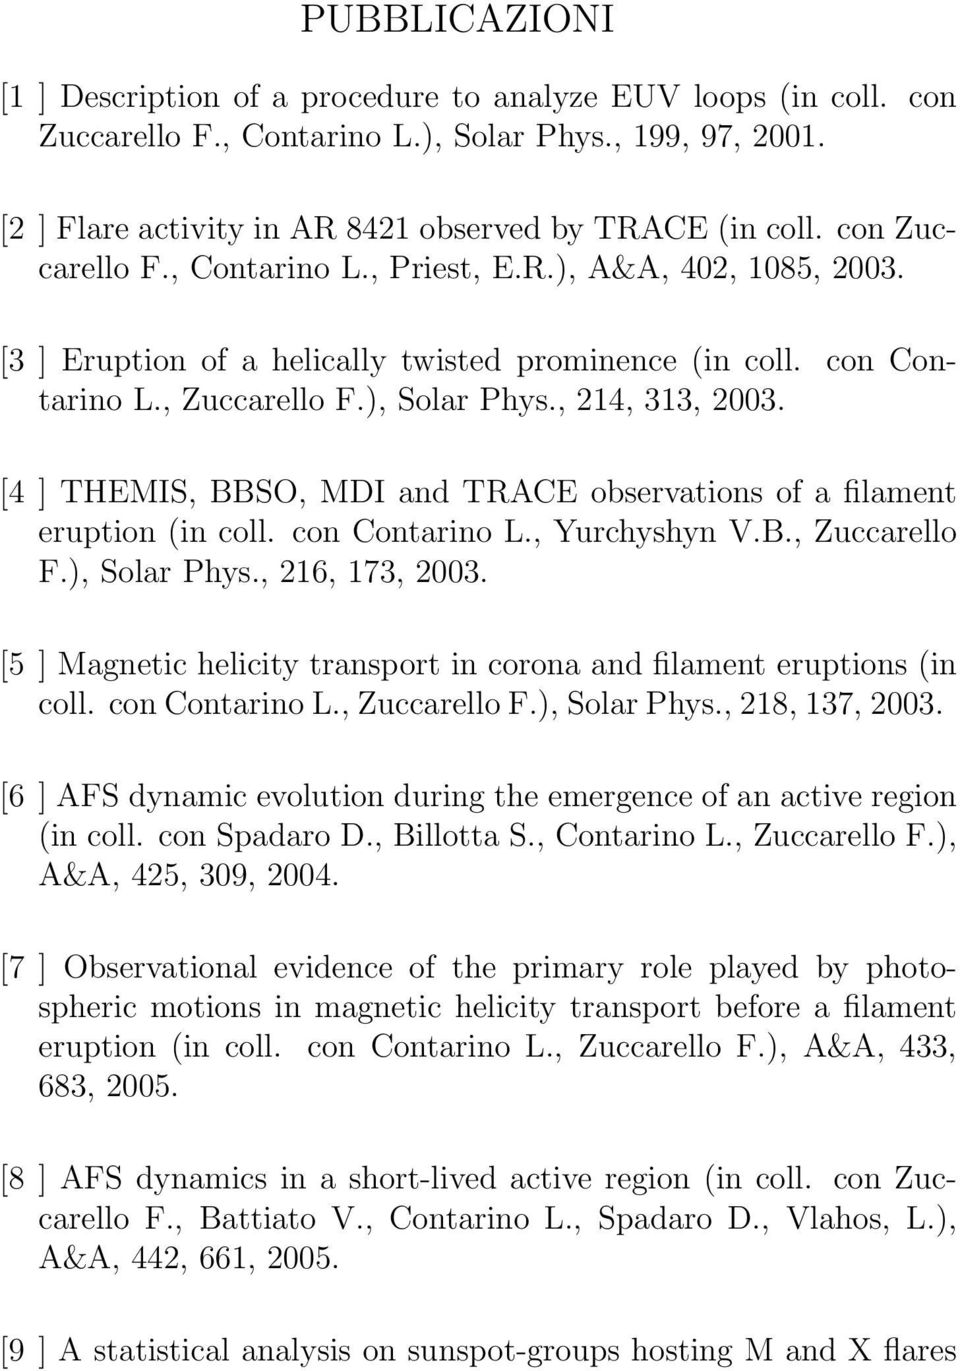 [4 ] THEMIS, BBSO, MDI and TRACE observations of a filament eruption (in coll. con Contarino L., Yurchyshyn V.B., Zuccarello F.), Solar Phys., 216, 173, 2003.